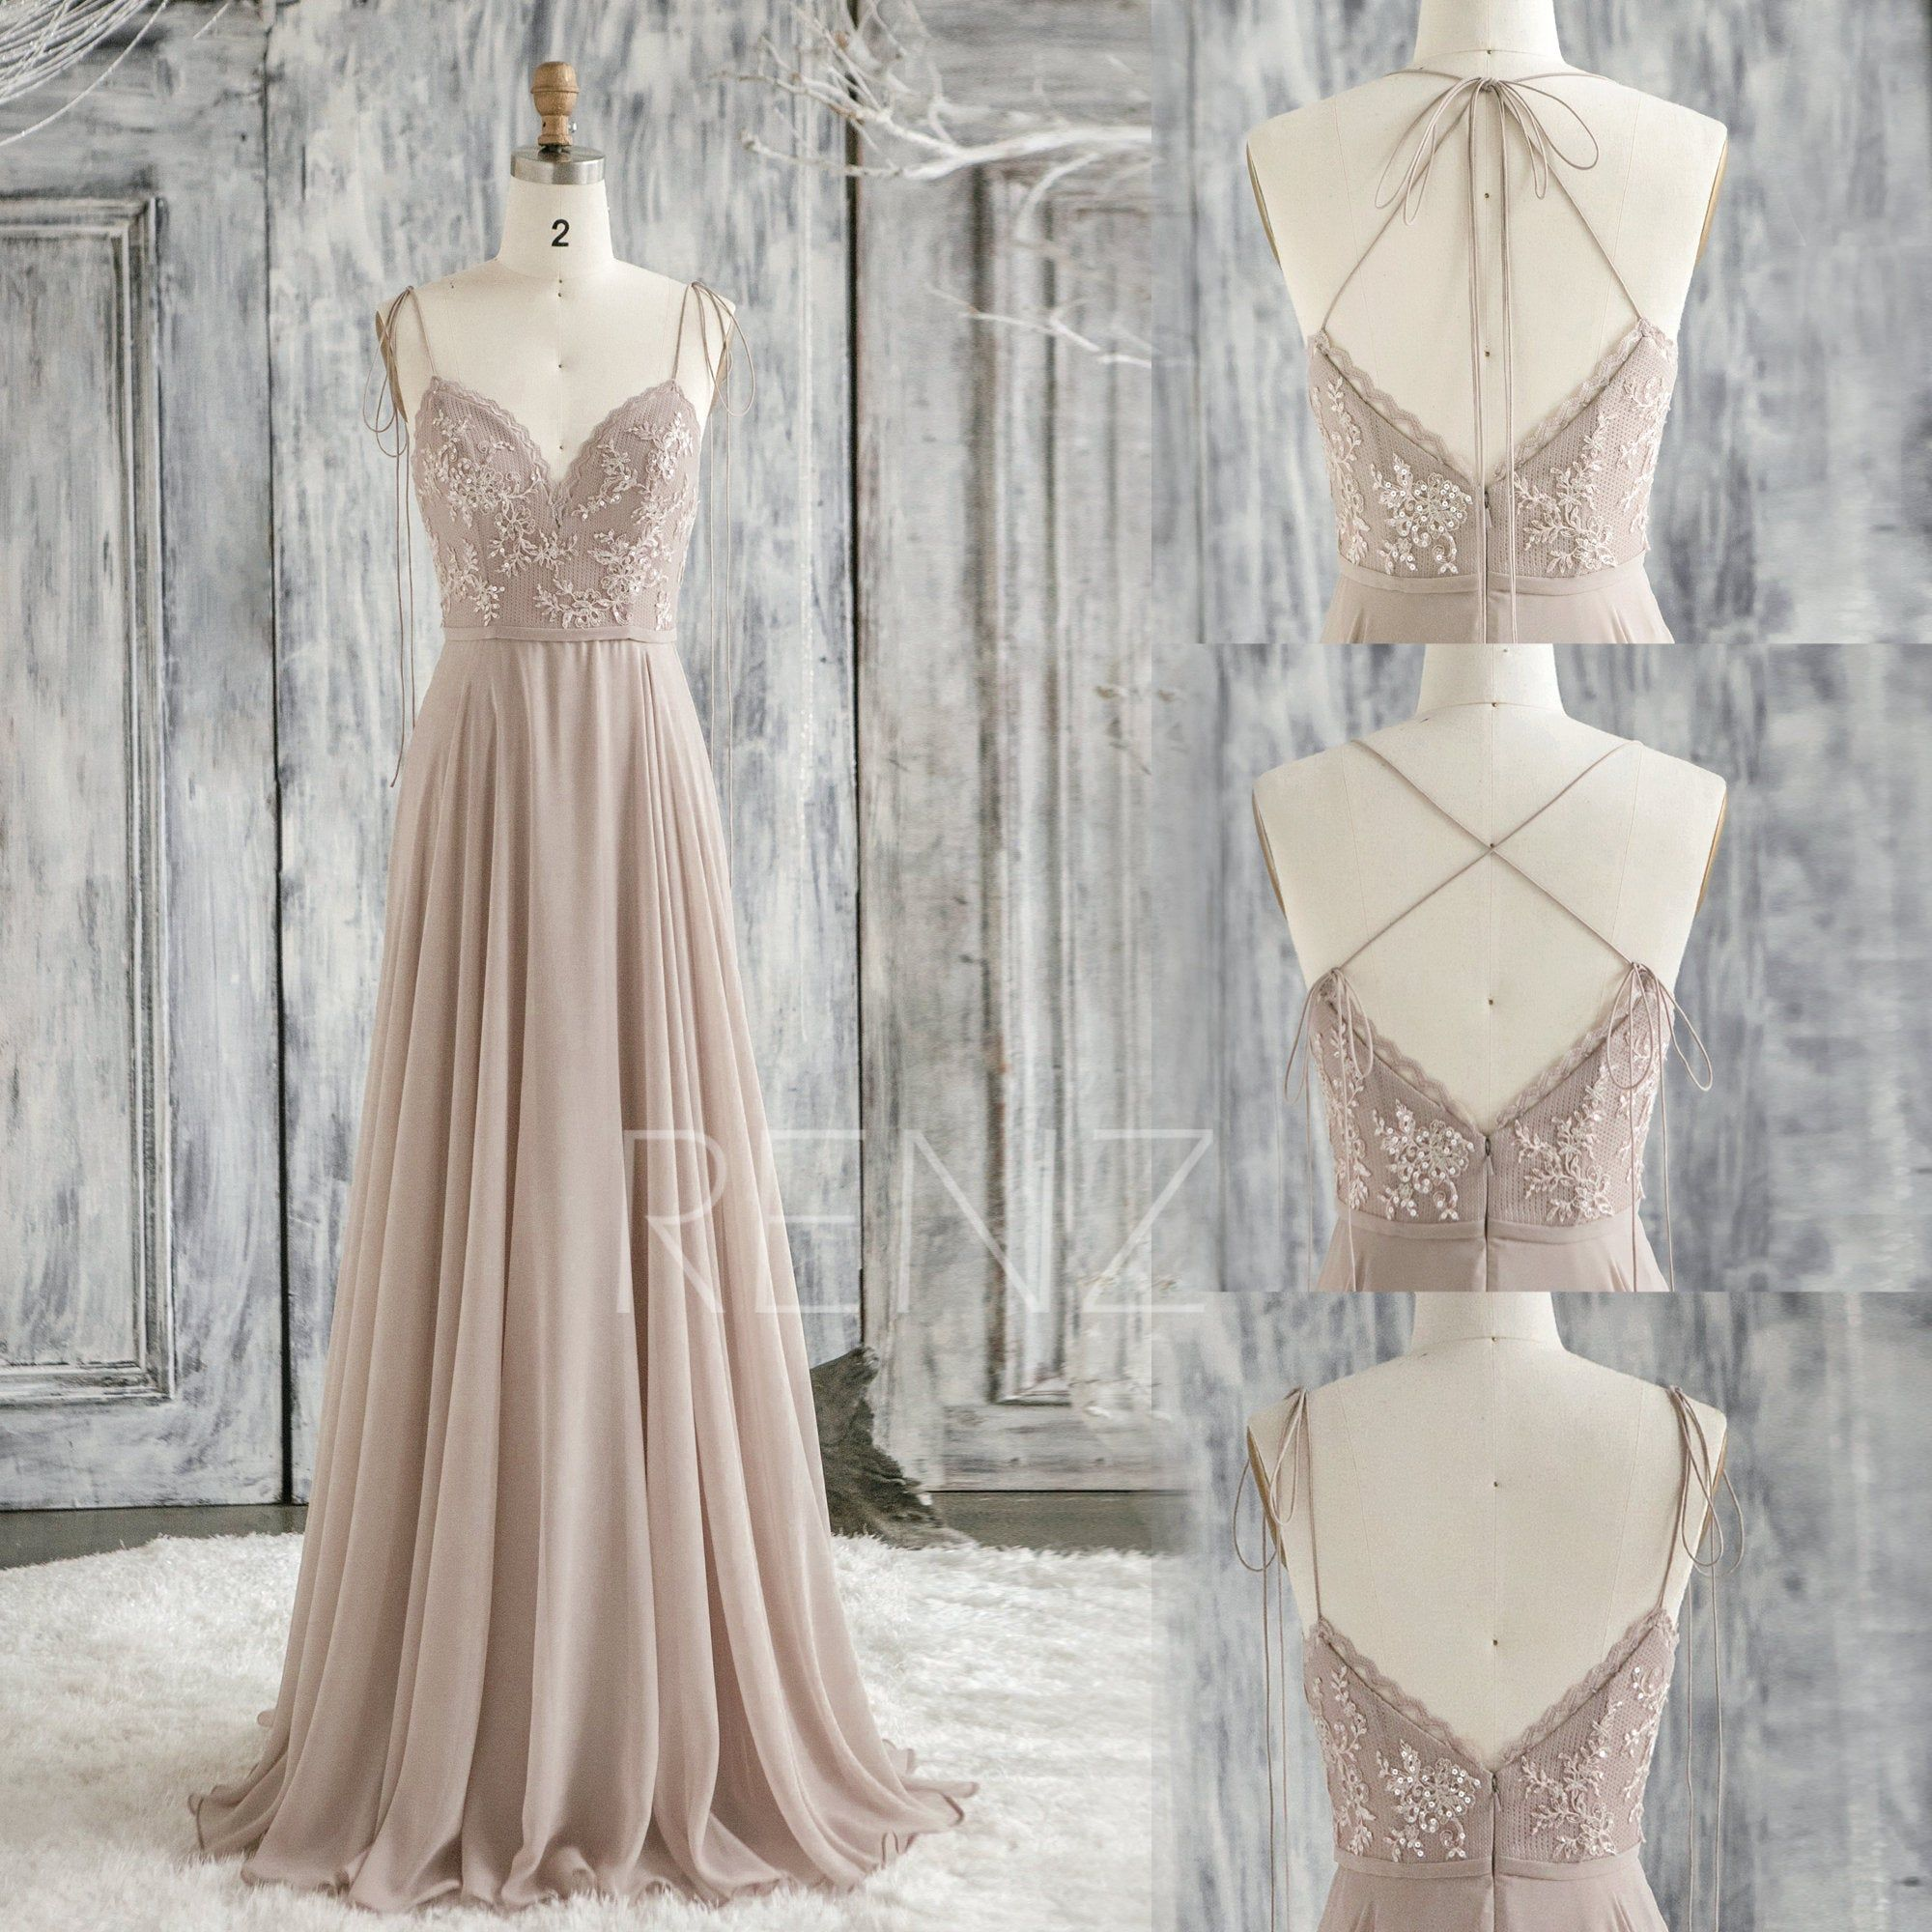 Infinity Bridesmaid Dress Brown Gray Prom Dress Long Convertible Straps Chiffon Party Dress Sweetheart A L Grey Prom Dress Long Grey Prom Dress Bridesmaid Gown [ 2000 x 2000 Pixel ]